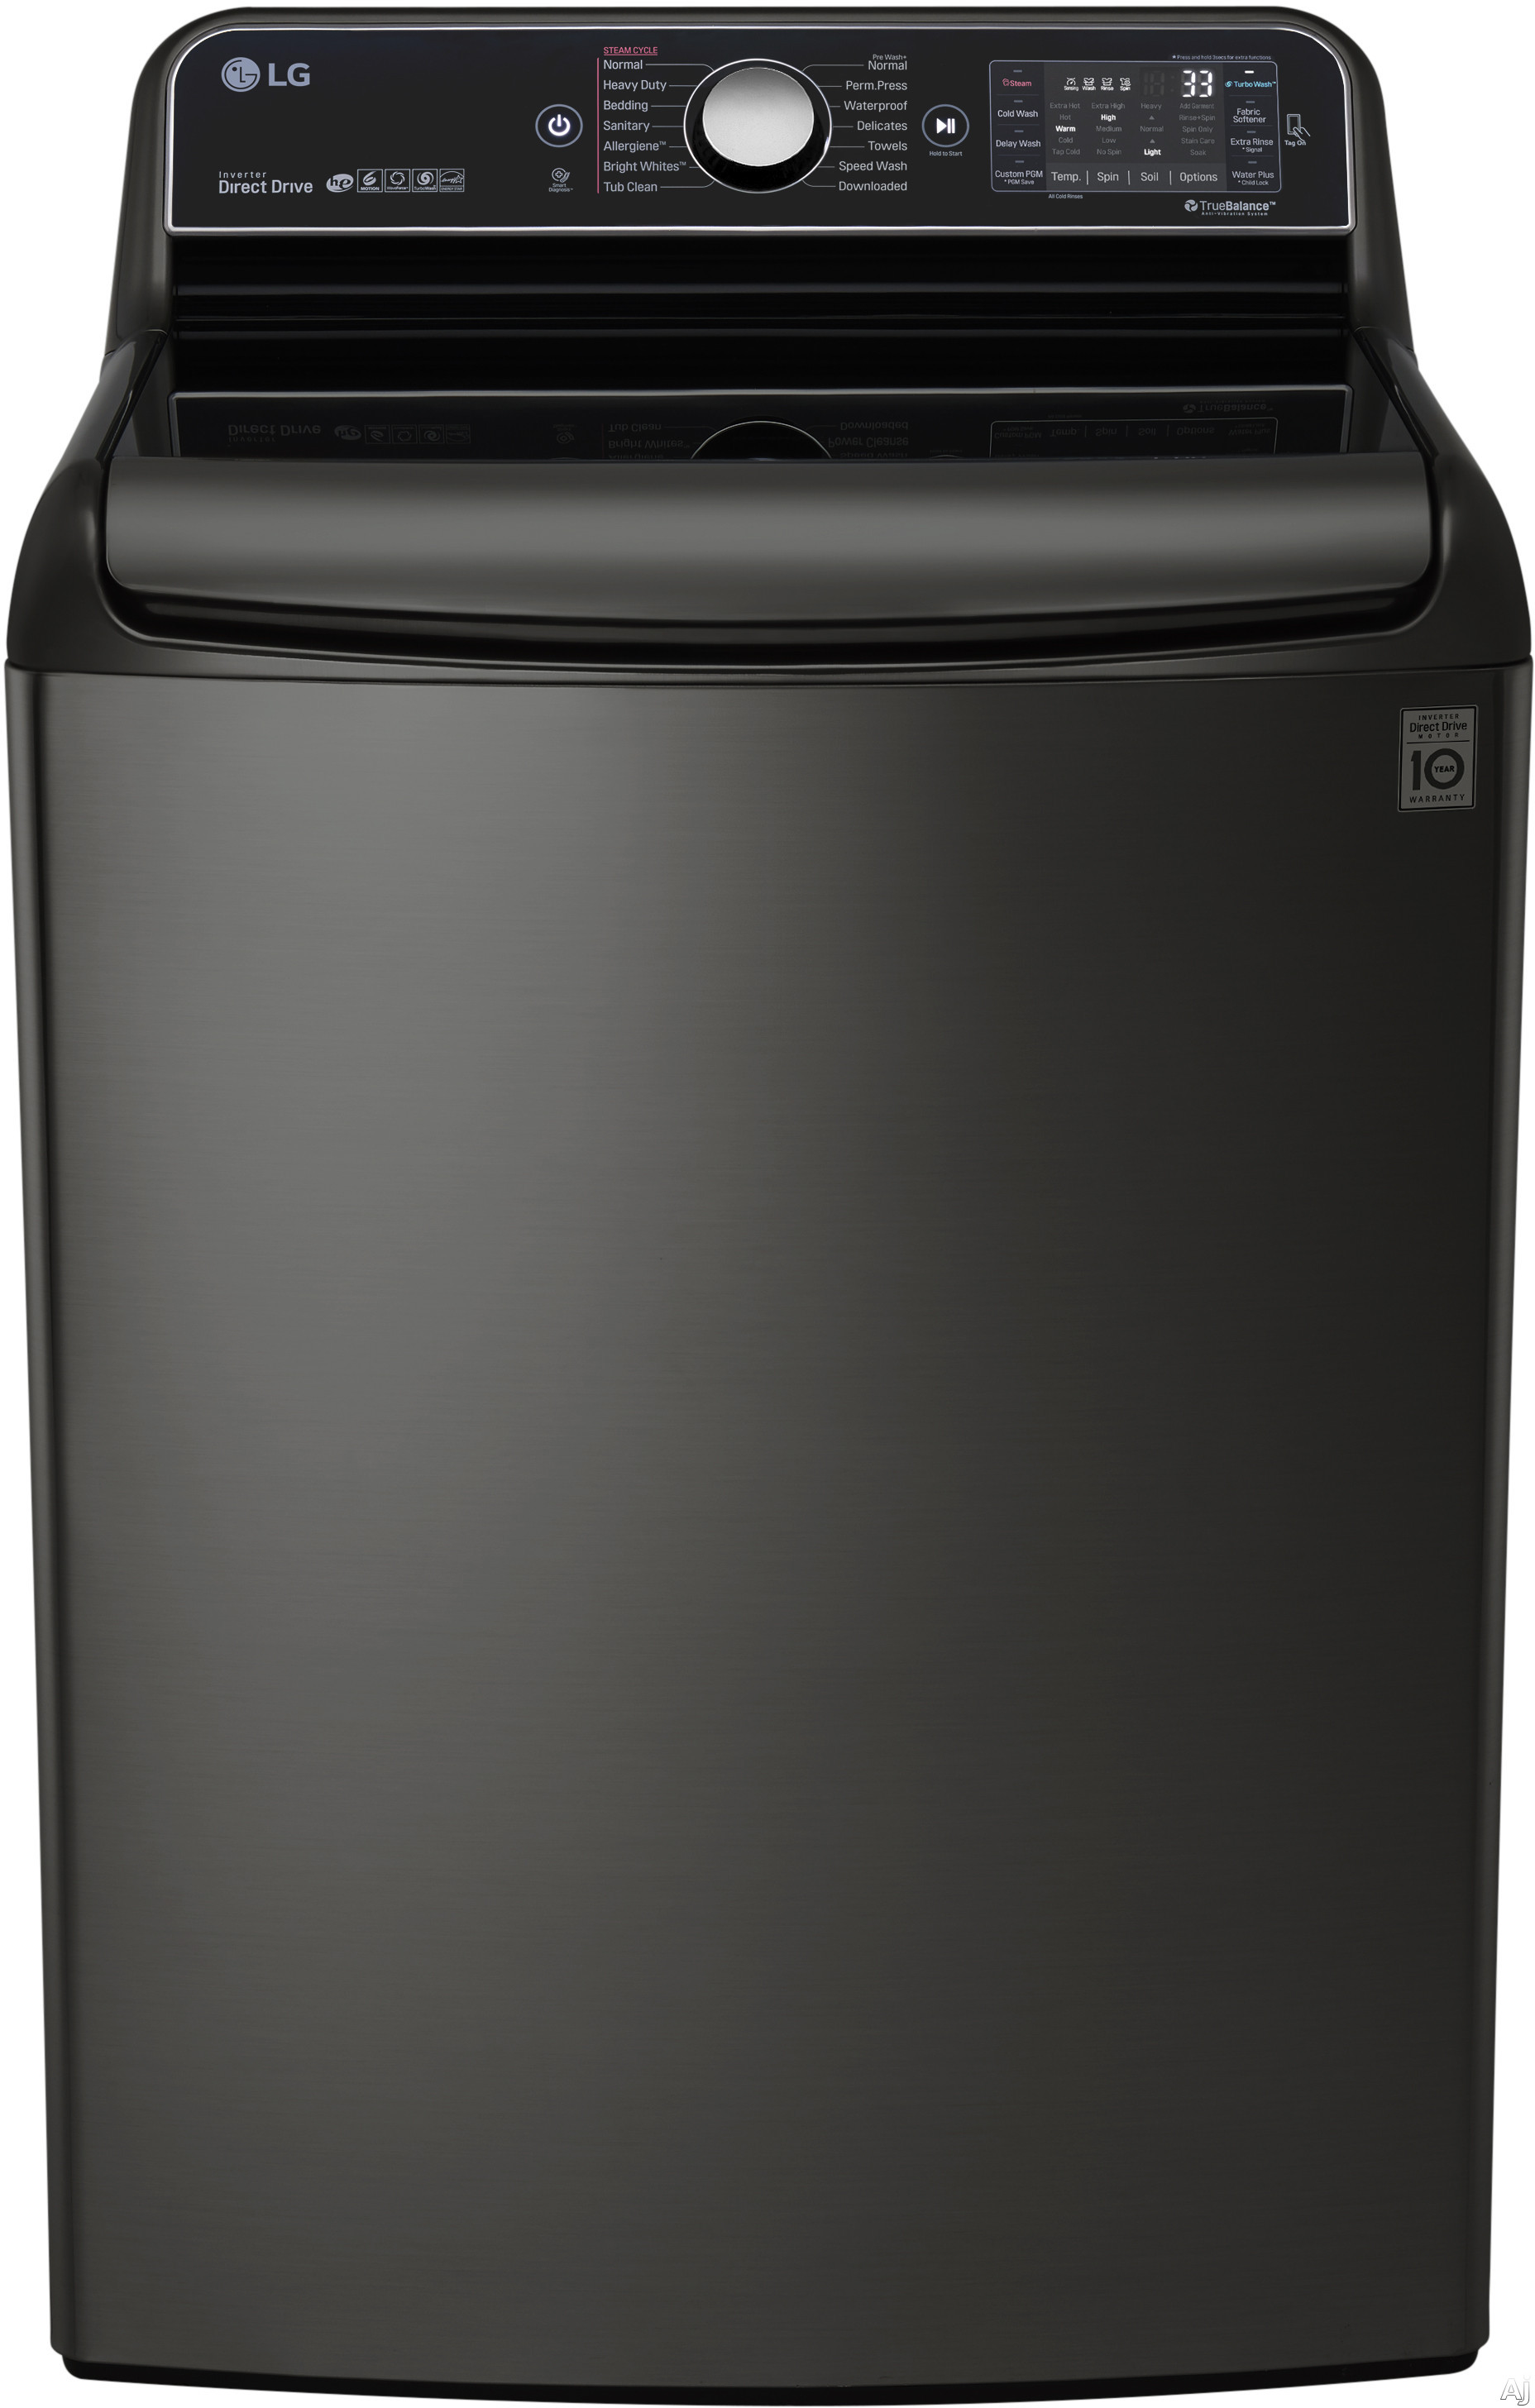 LG TurboWash Series WT7700HKA 29 Inch 5.7 cu. ft. Top Load Washer with 14 Wash Cycles, 1,050 RPM, Steam, TurboWash Technology, StainCare, Speed Wash, Allergiene Cycle, Sanitary Cycle, Smart Diagnosis and ENERGY STAR Qualification: Black Stainless Steel